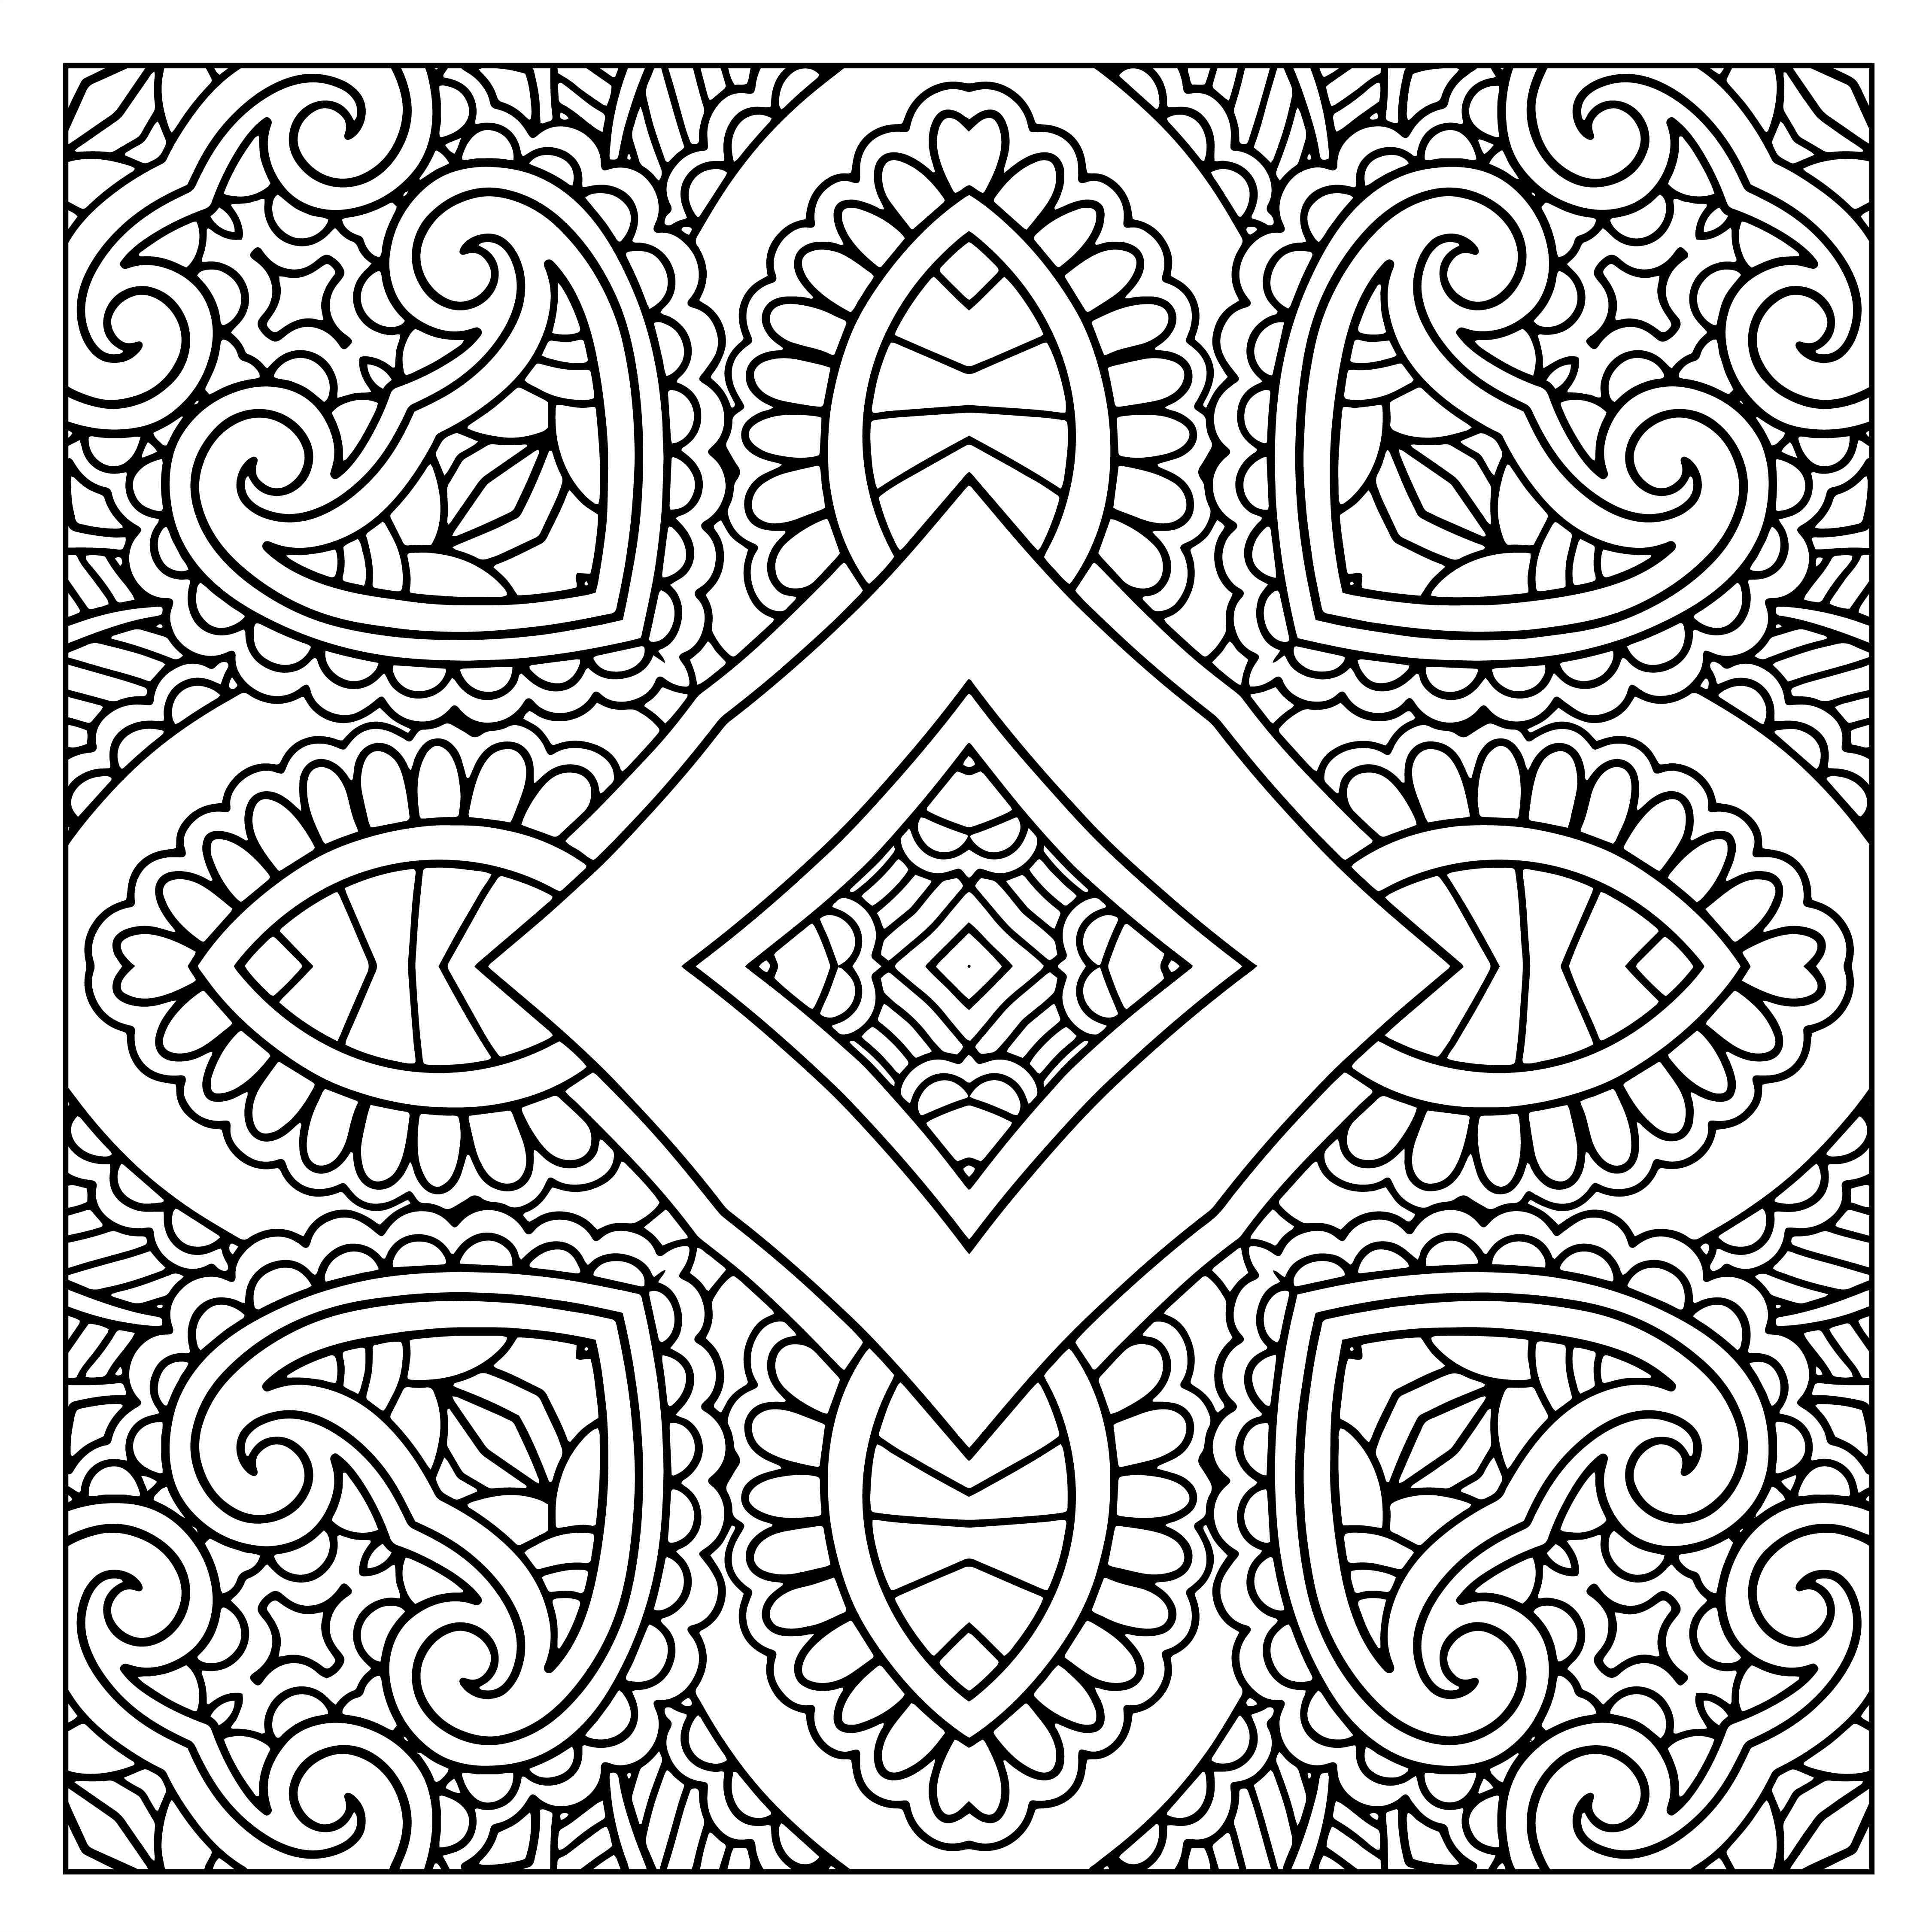 pattern coloring pages for adults free printable geometric coloring pages for adults pages pattern coloring for adults